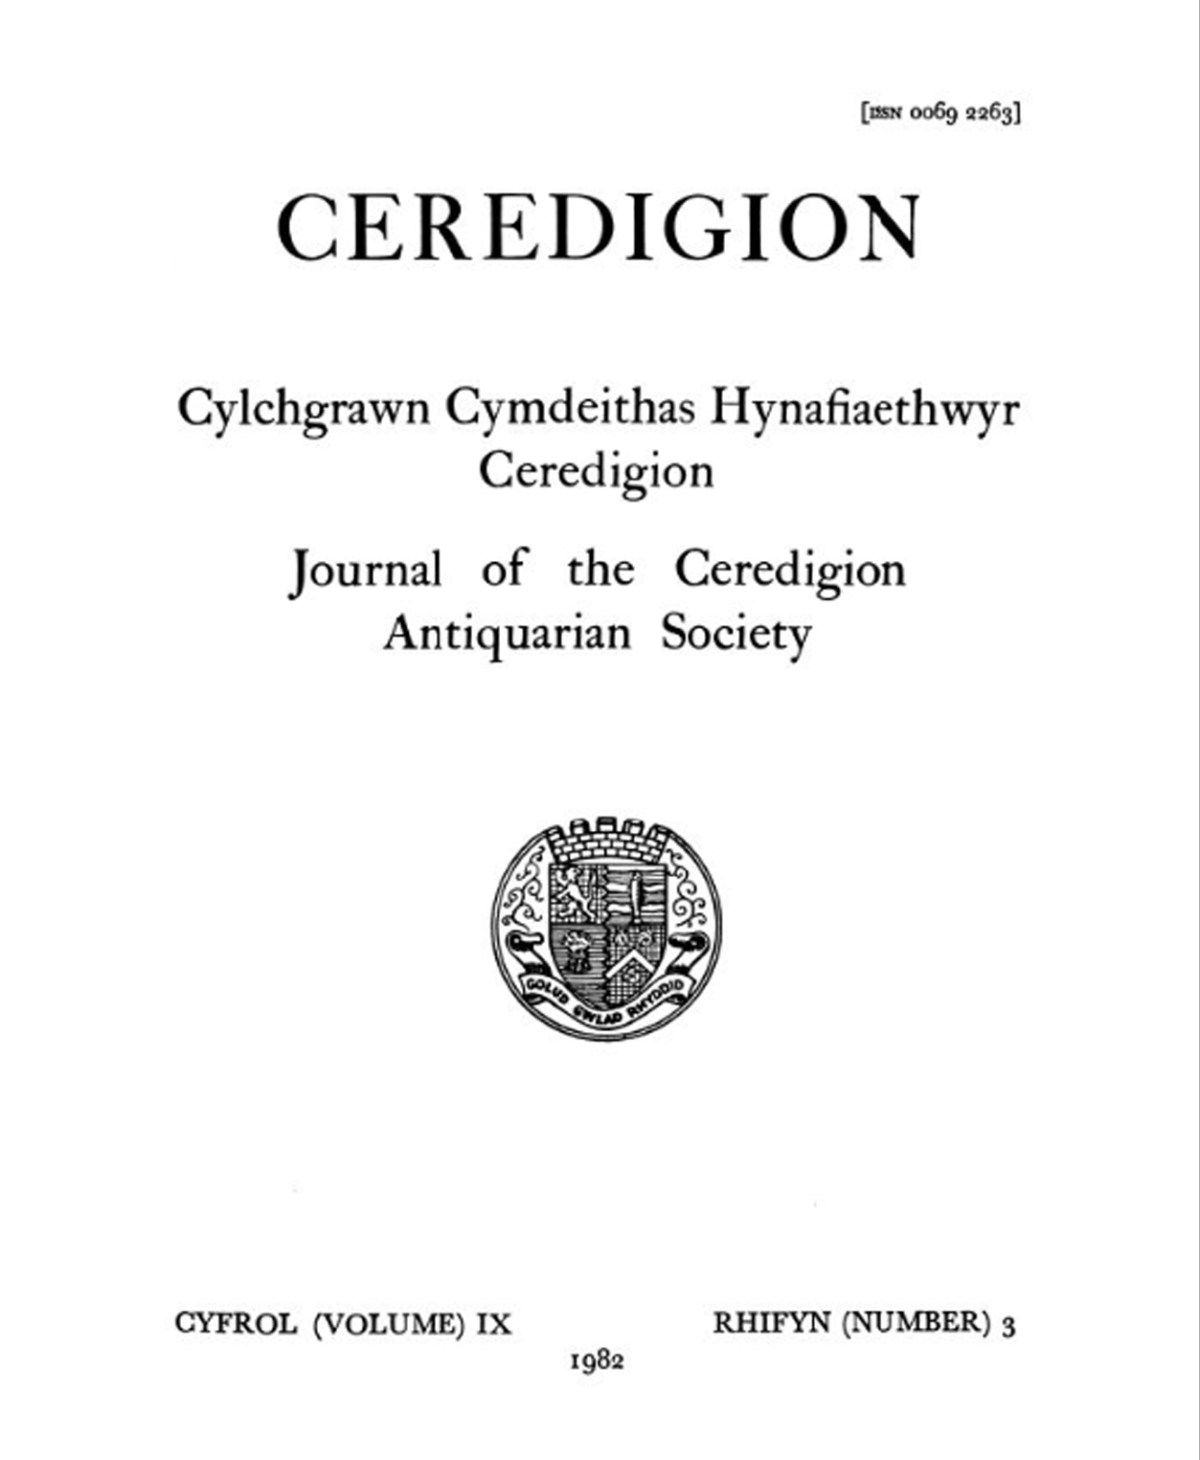 Ceredigion – Journal of the Cardiganshire Antiquarian Society, 1982 Vol IX No 3